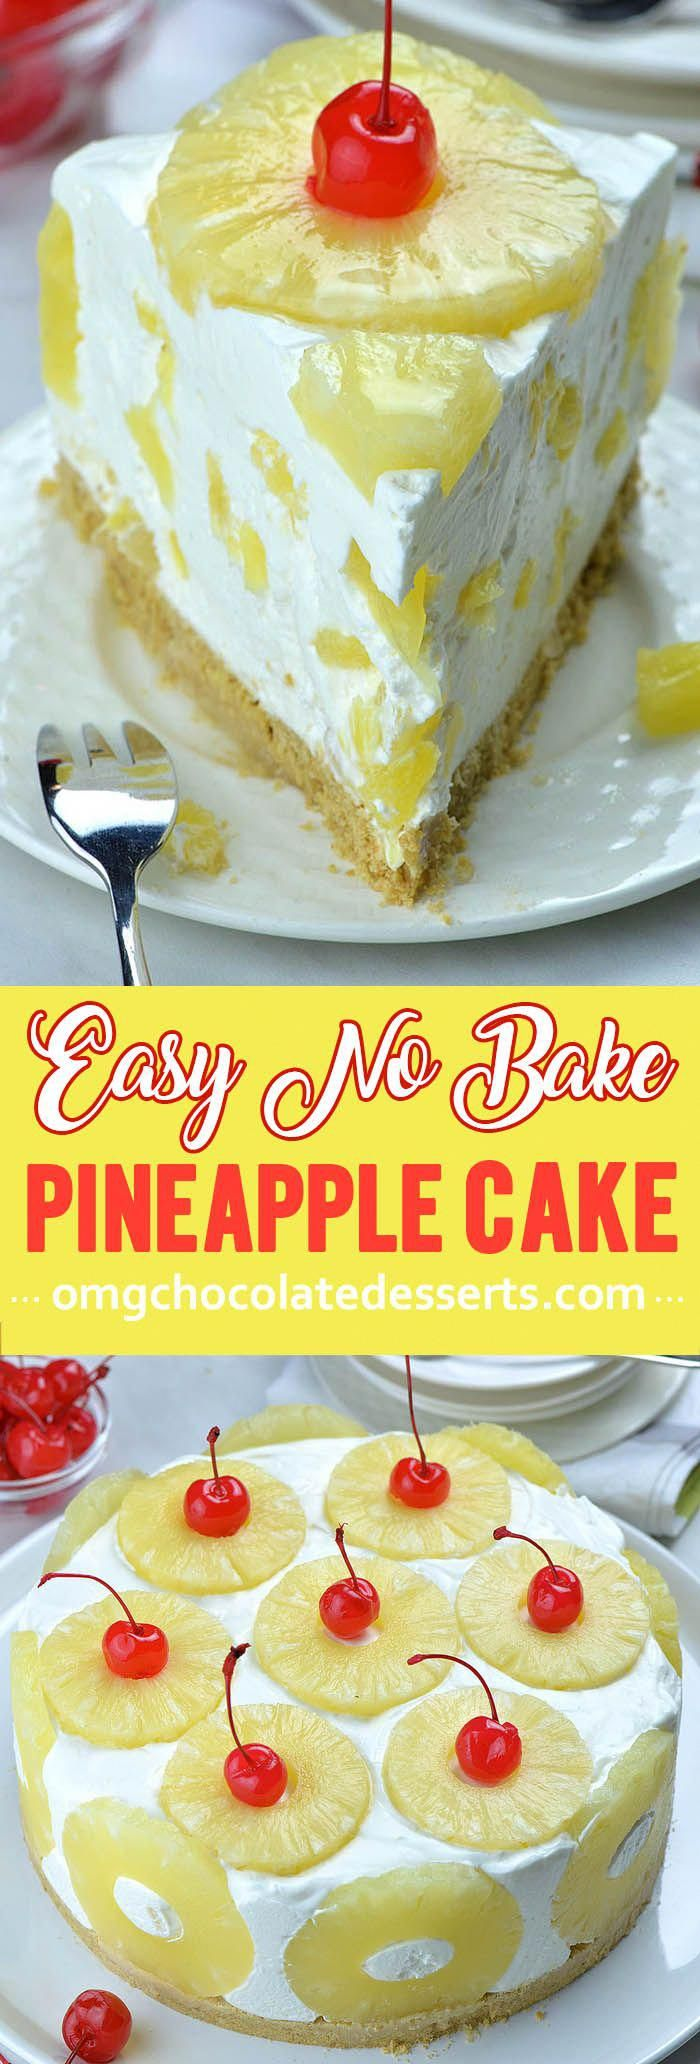 Easy no-bake summery dessert with a creamy pineapple filling. The Best No Bake Pineapple Cake Recipe.